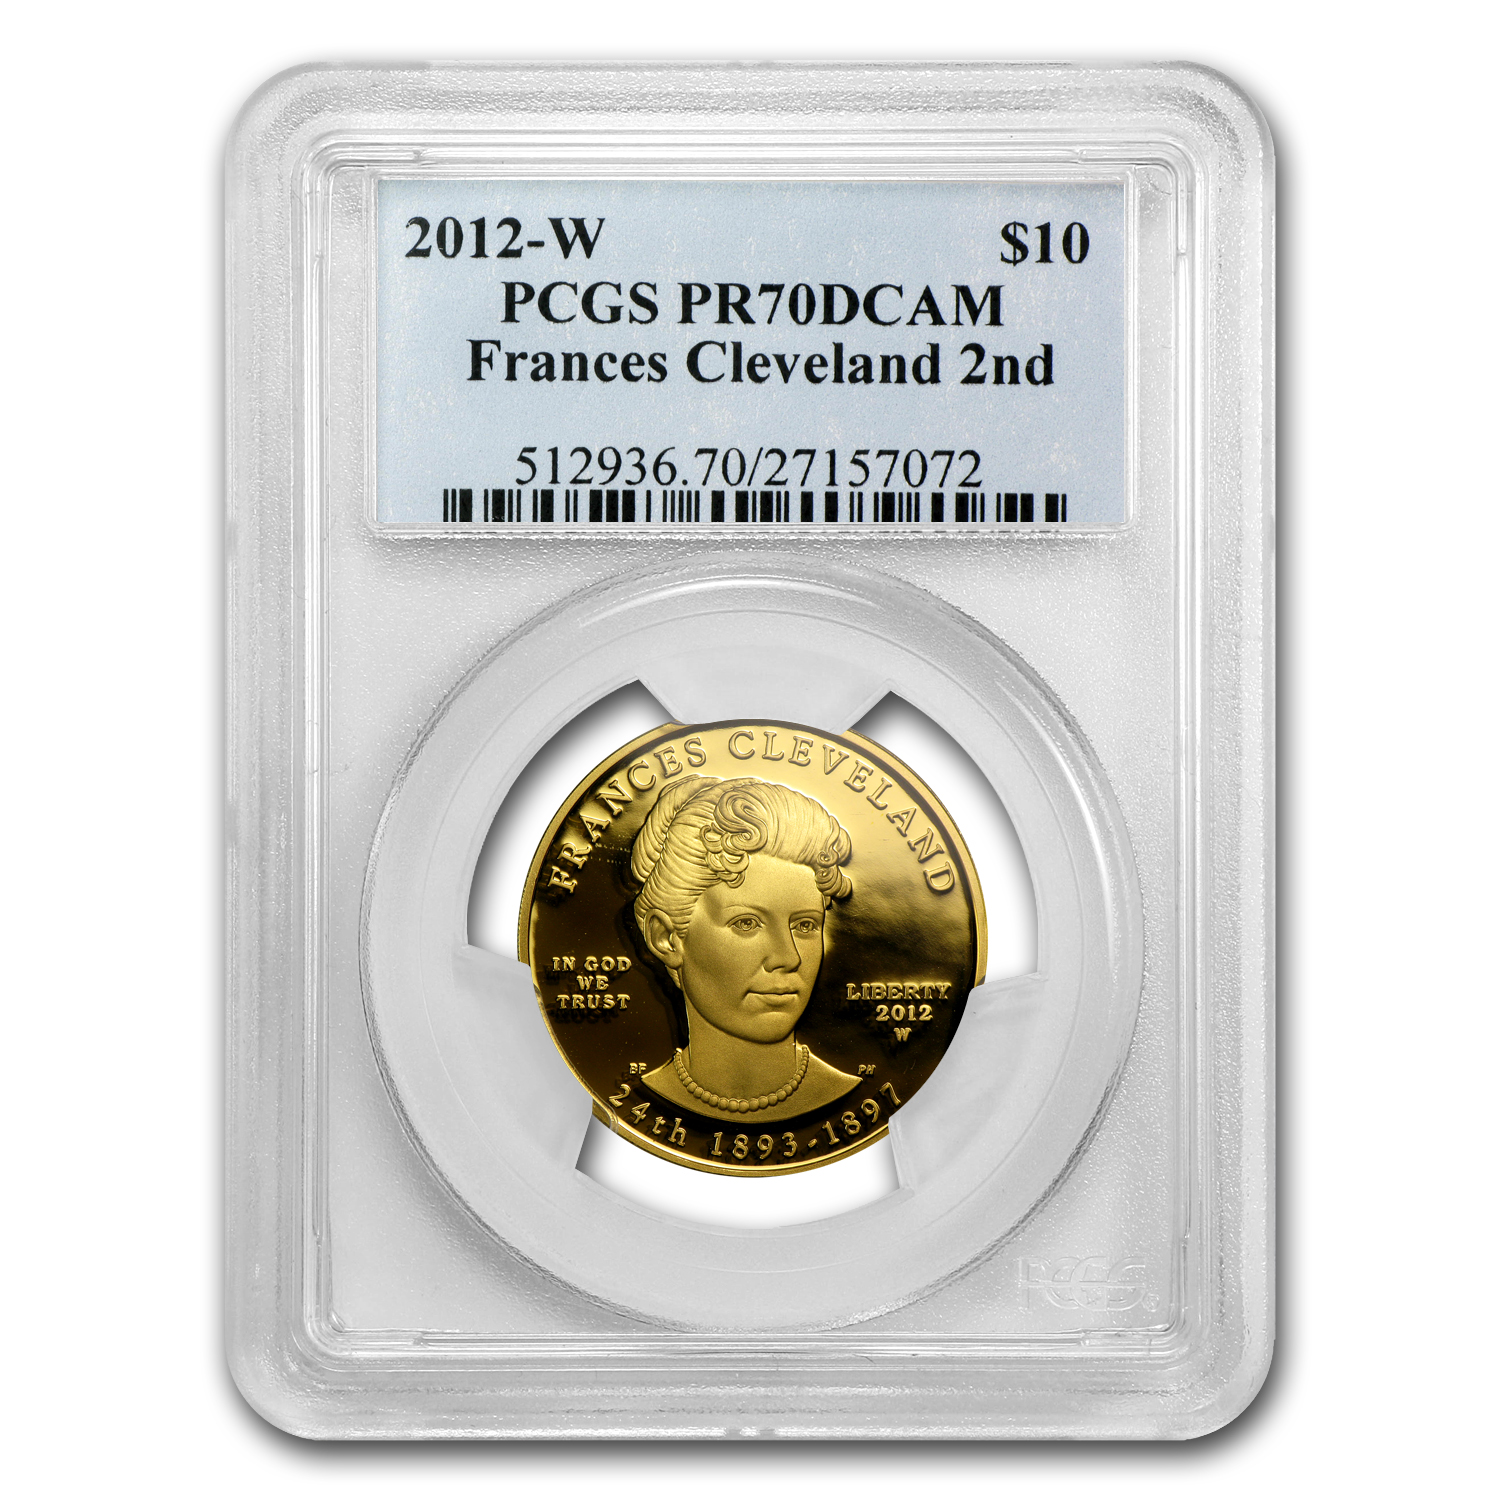 2012-W 1/2 oz Proof Gold Frances Cleveland 2nd Term PR-70 PCGS